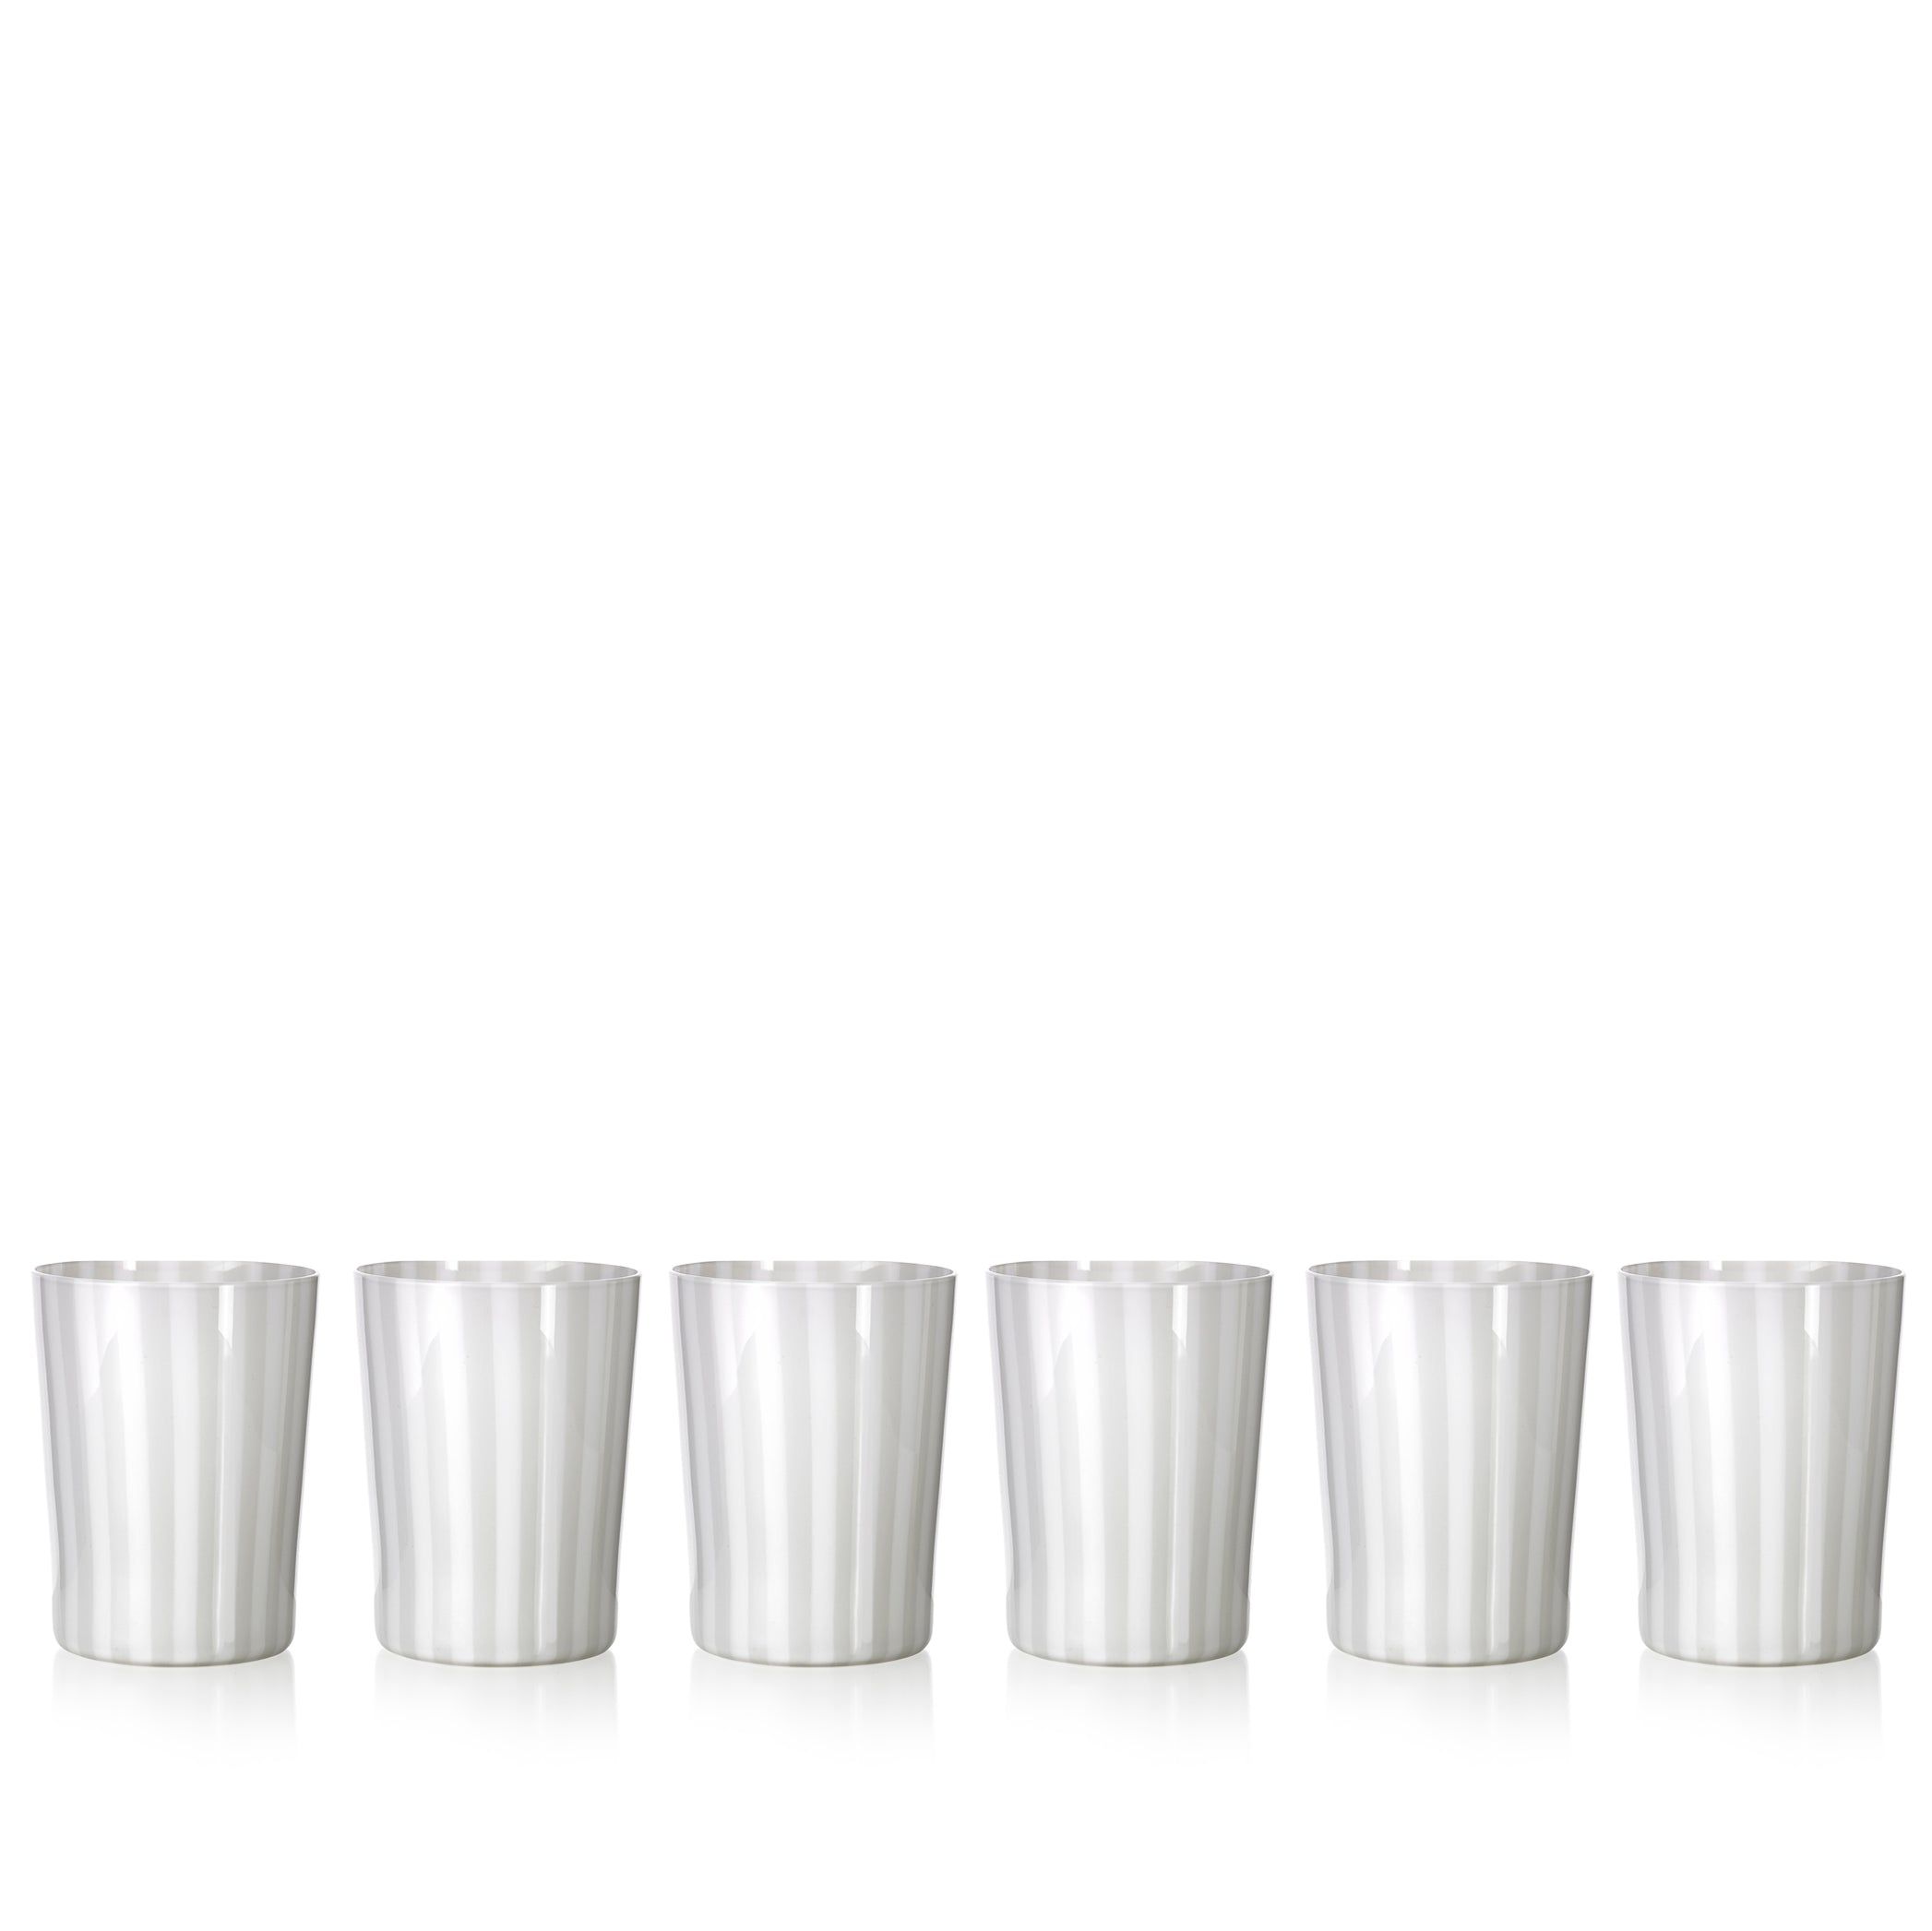 Set of Six Handblown 'Pastelli' Glass Tumblers, Designed by LPWK in Grey and White Stripe